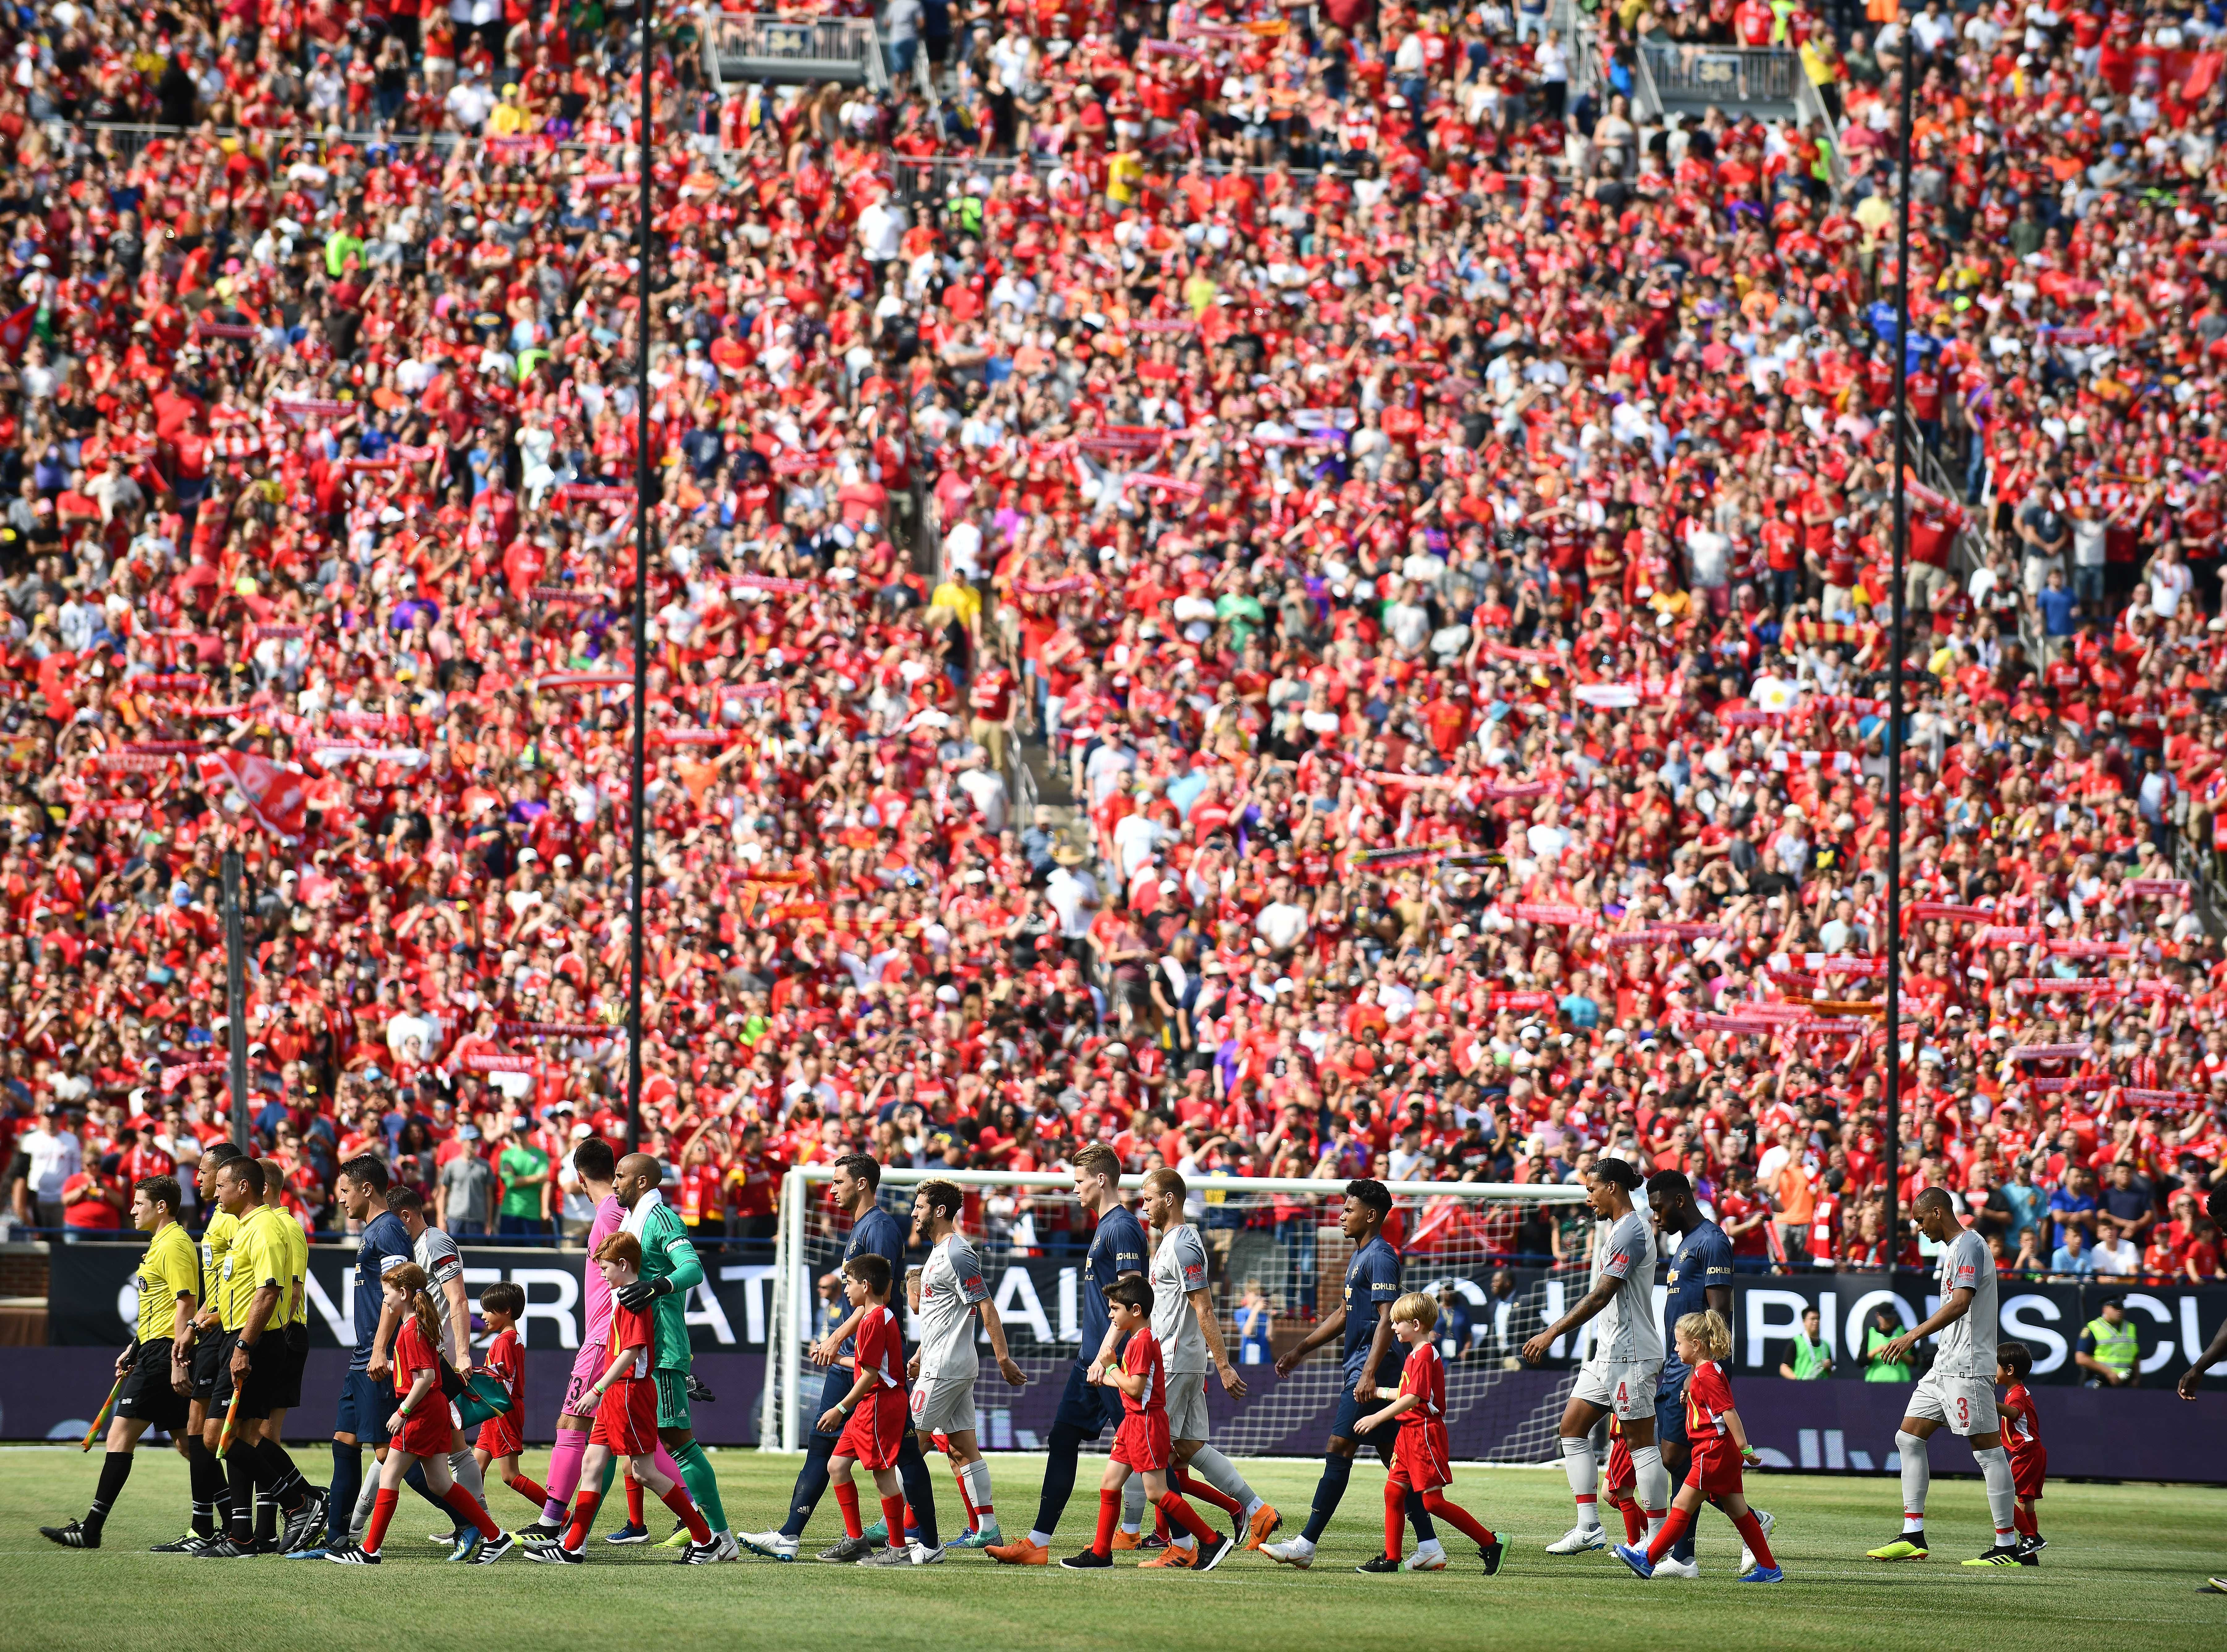 Manchester United and Liverpool make their way onto the field as over 100,000 fans cheer them on at the 'Big House.'